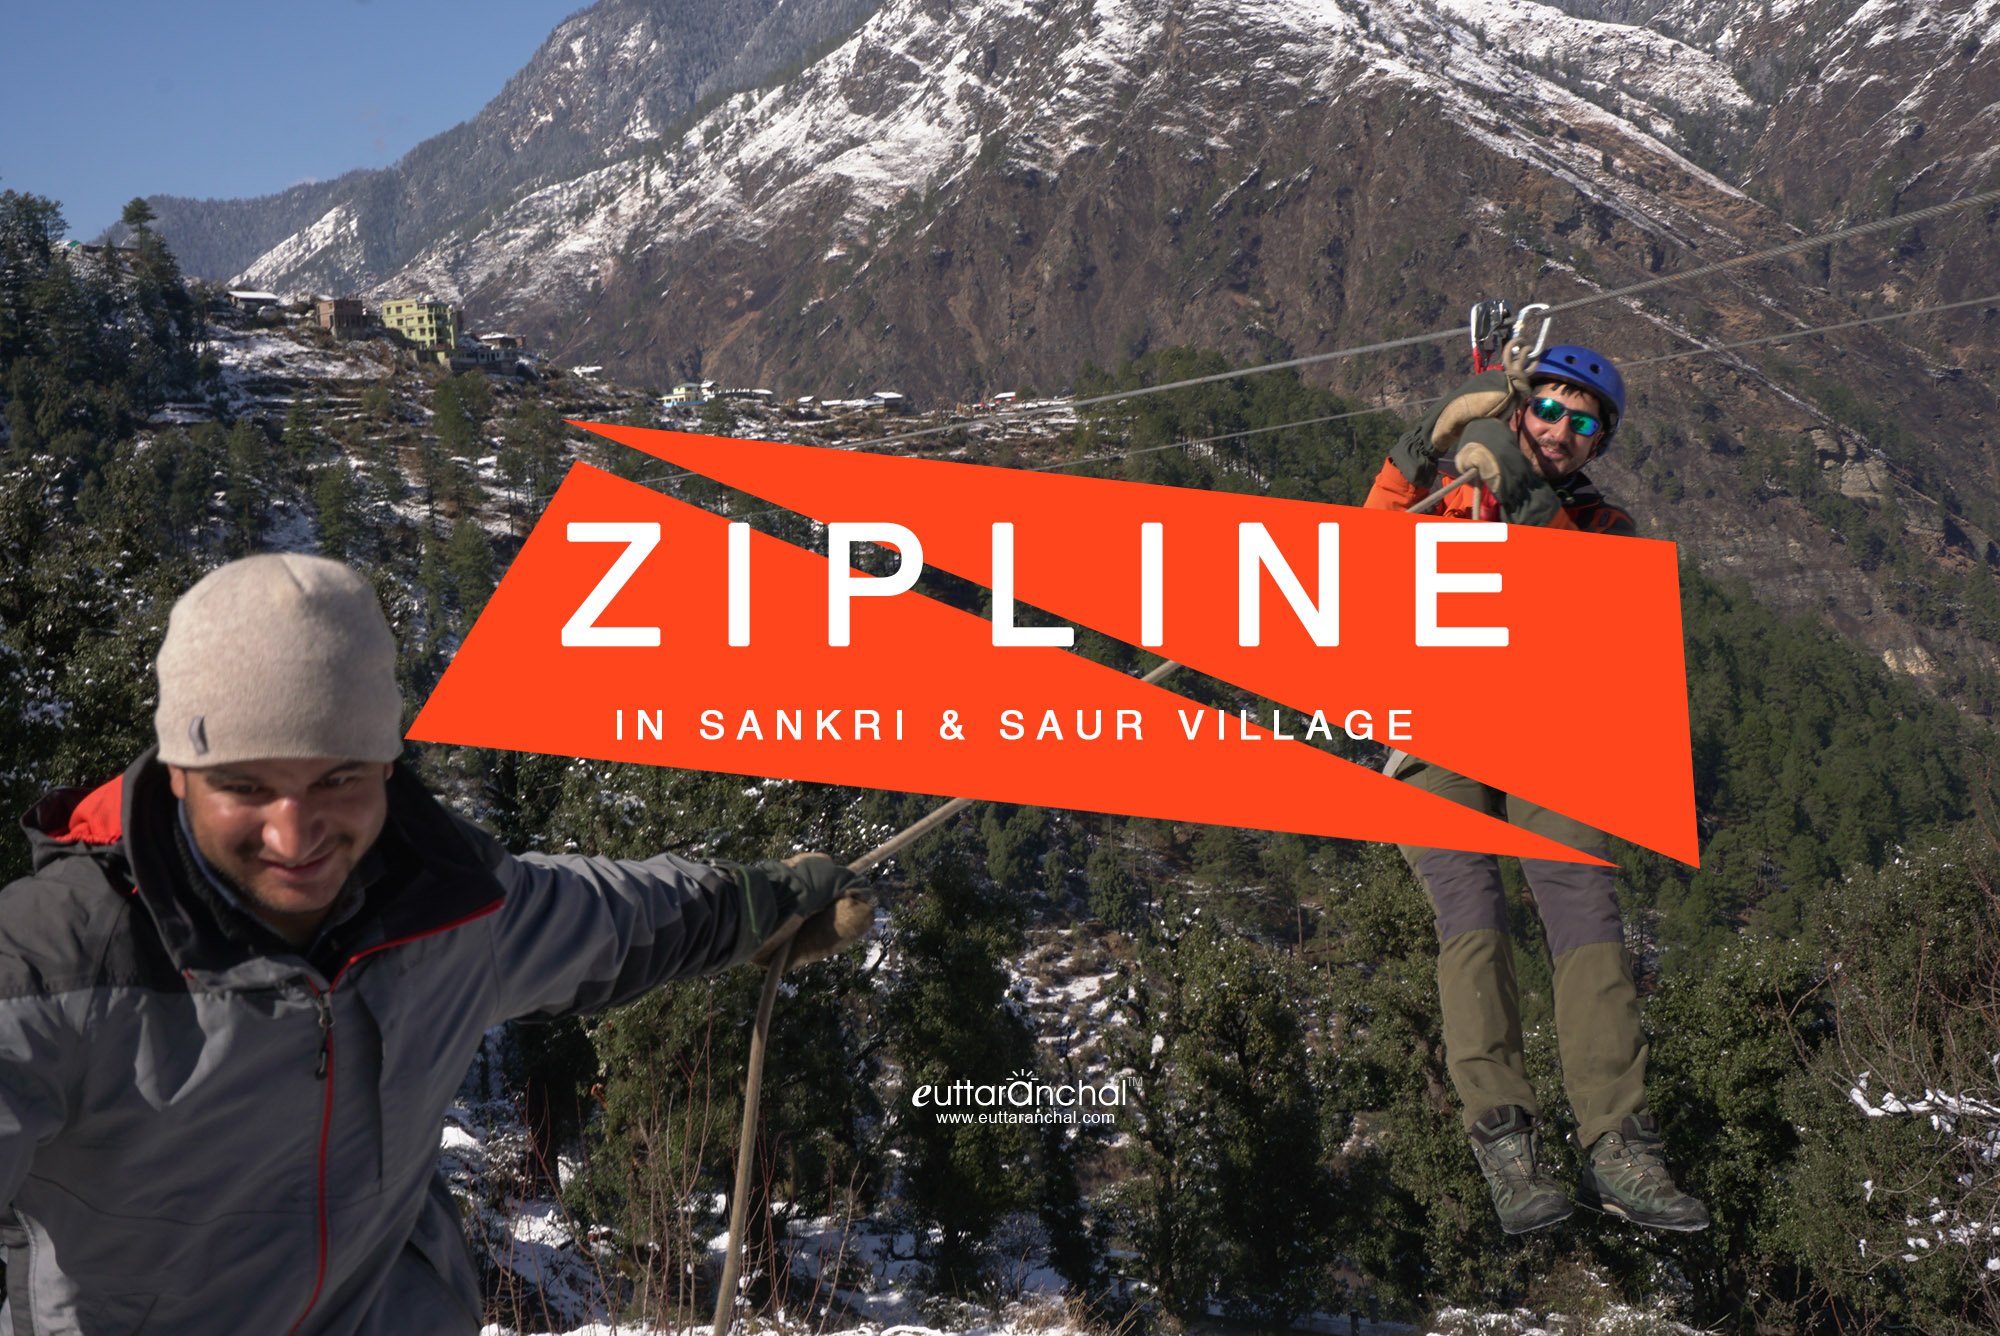 Zipline 700 in Sankri Photos